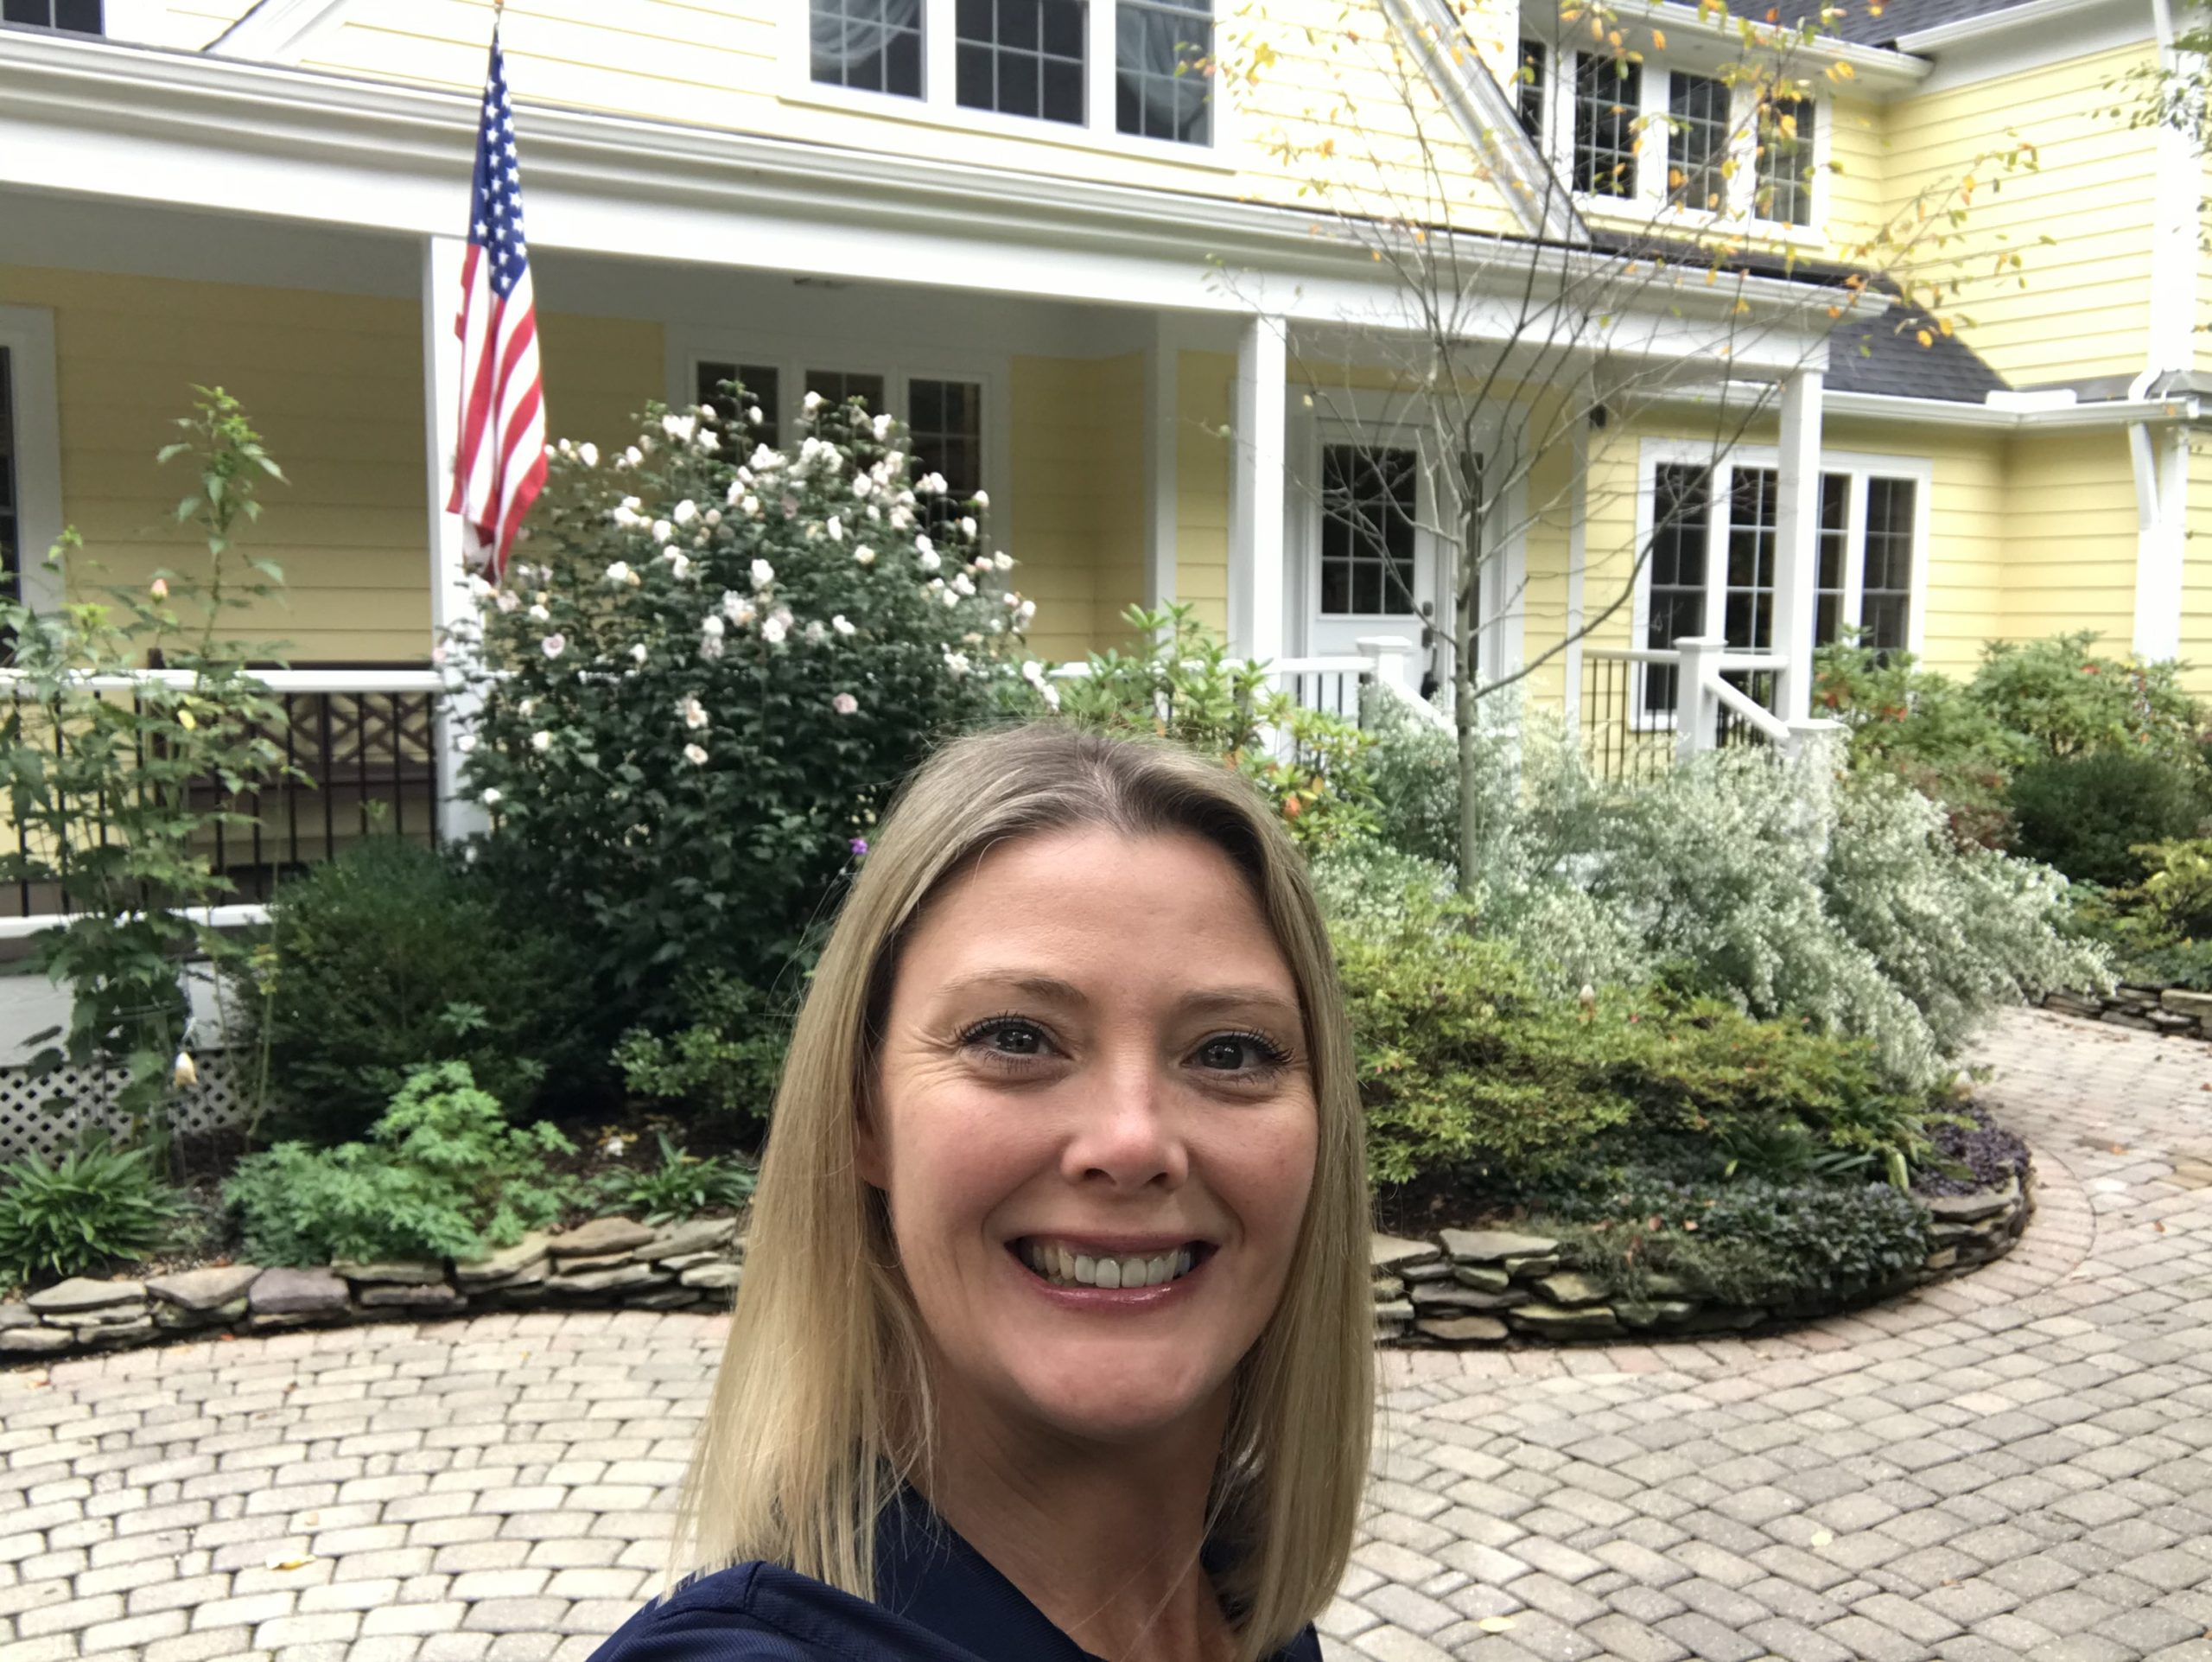 There are some gorgeous homes on the market in the #CLE! It was great to meet some new agents for Green Leaf Home Inspections, LLC while on tour today. Who's representing you?